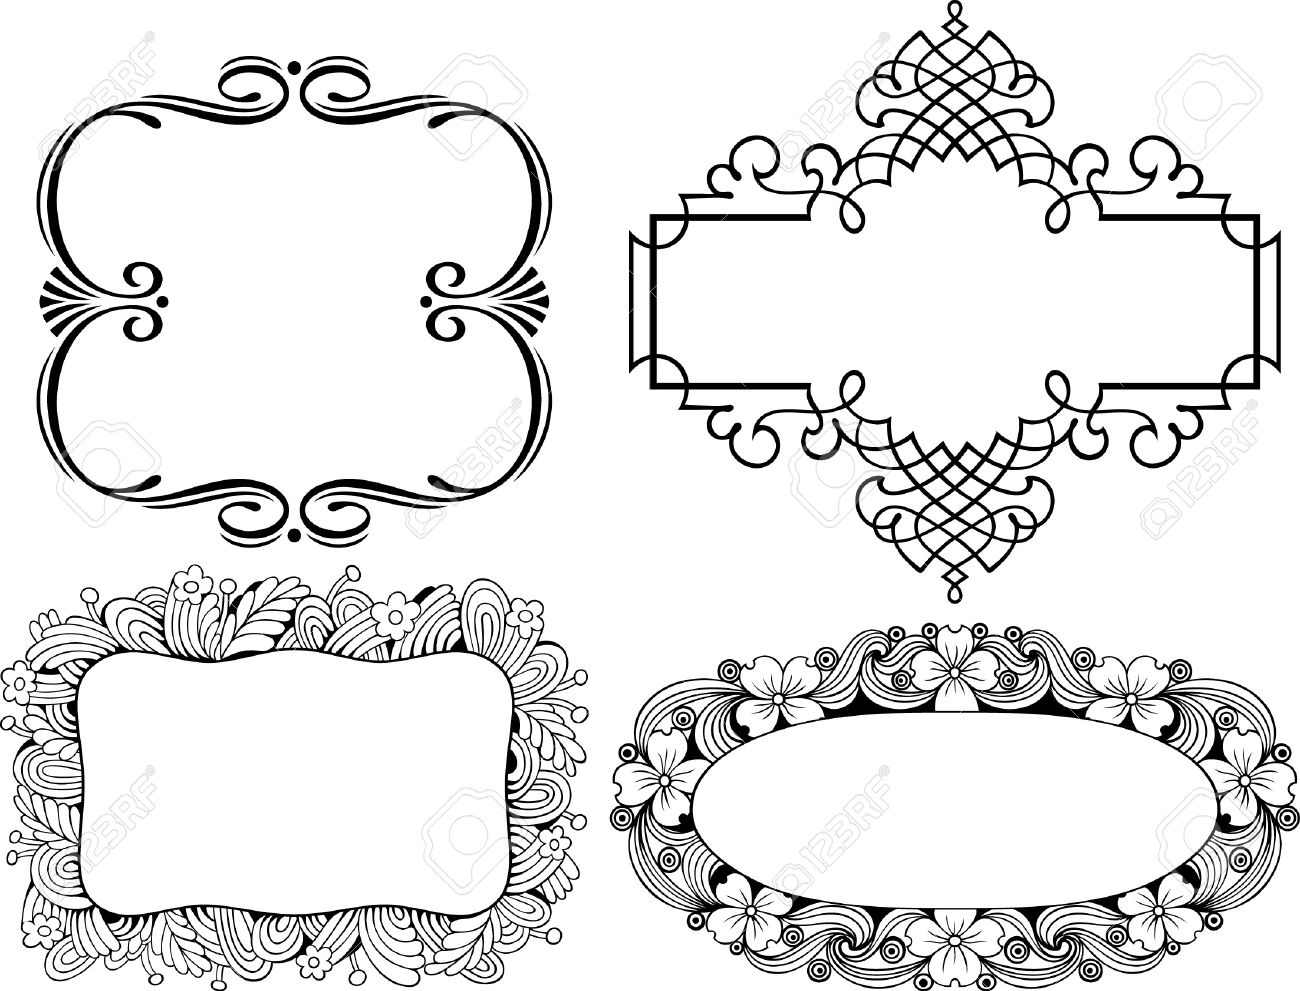 decorative frames on white stock vector 10332520 - Decorative Frames